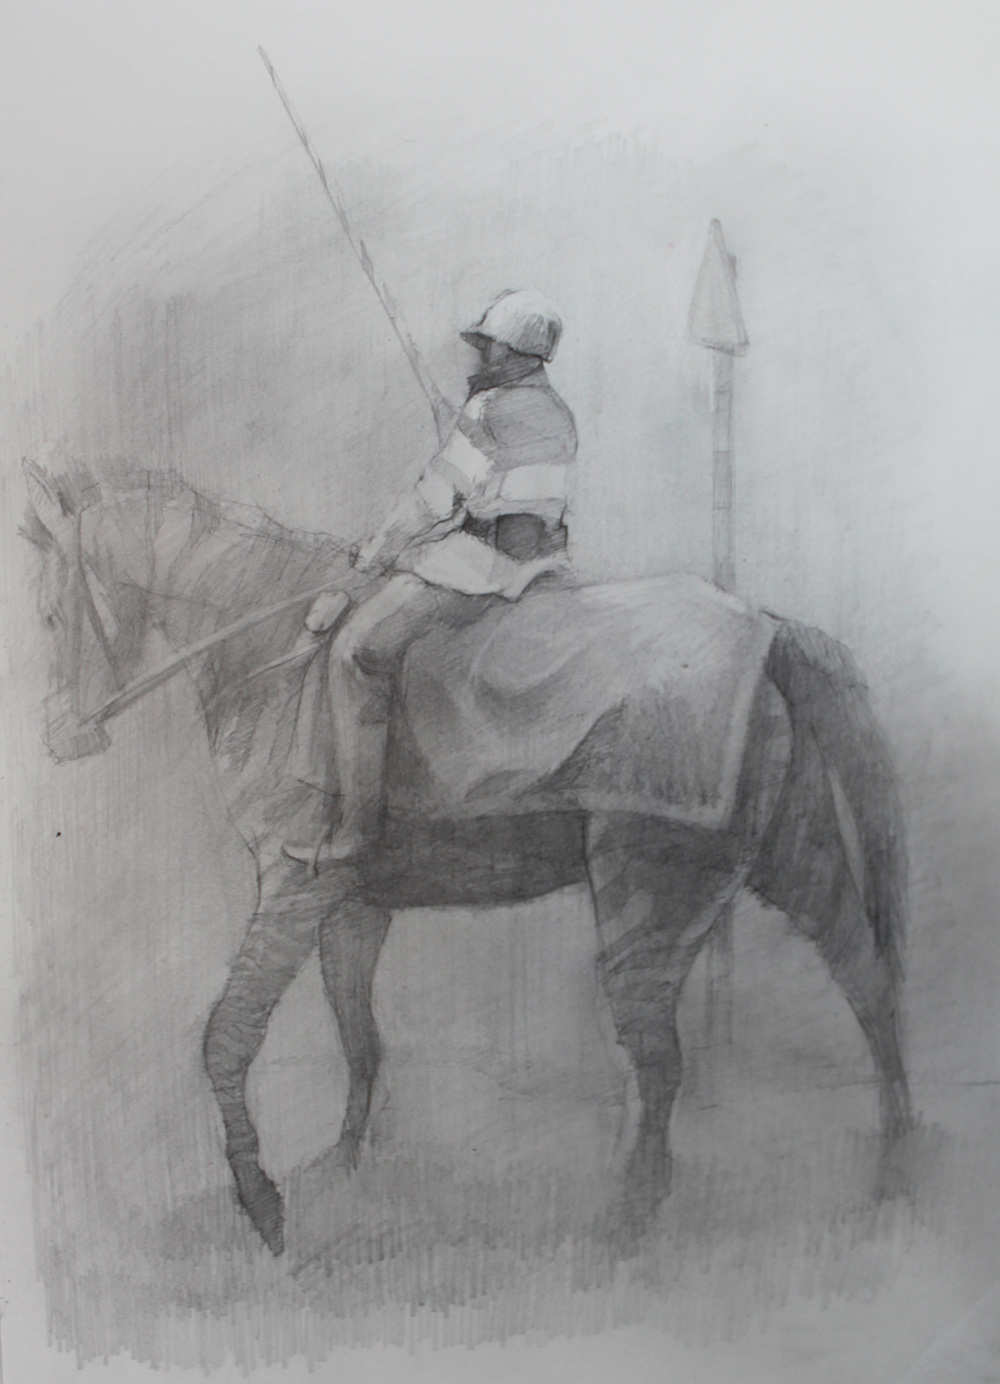 Rider, Pencil on paper, 29x21cm, 2010